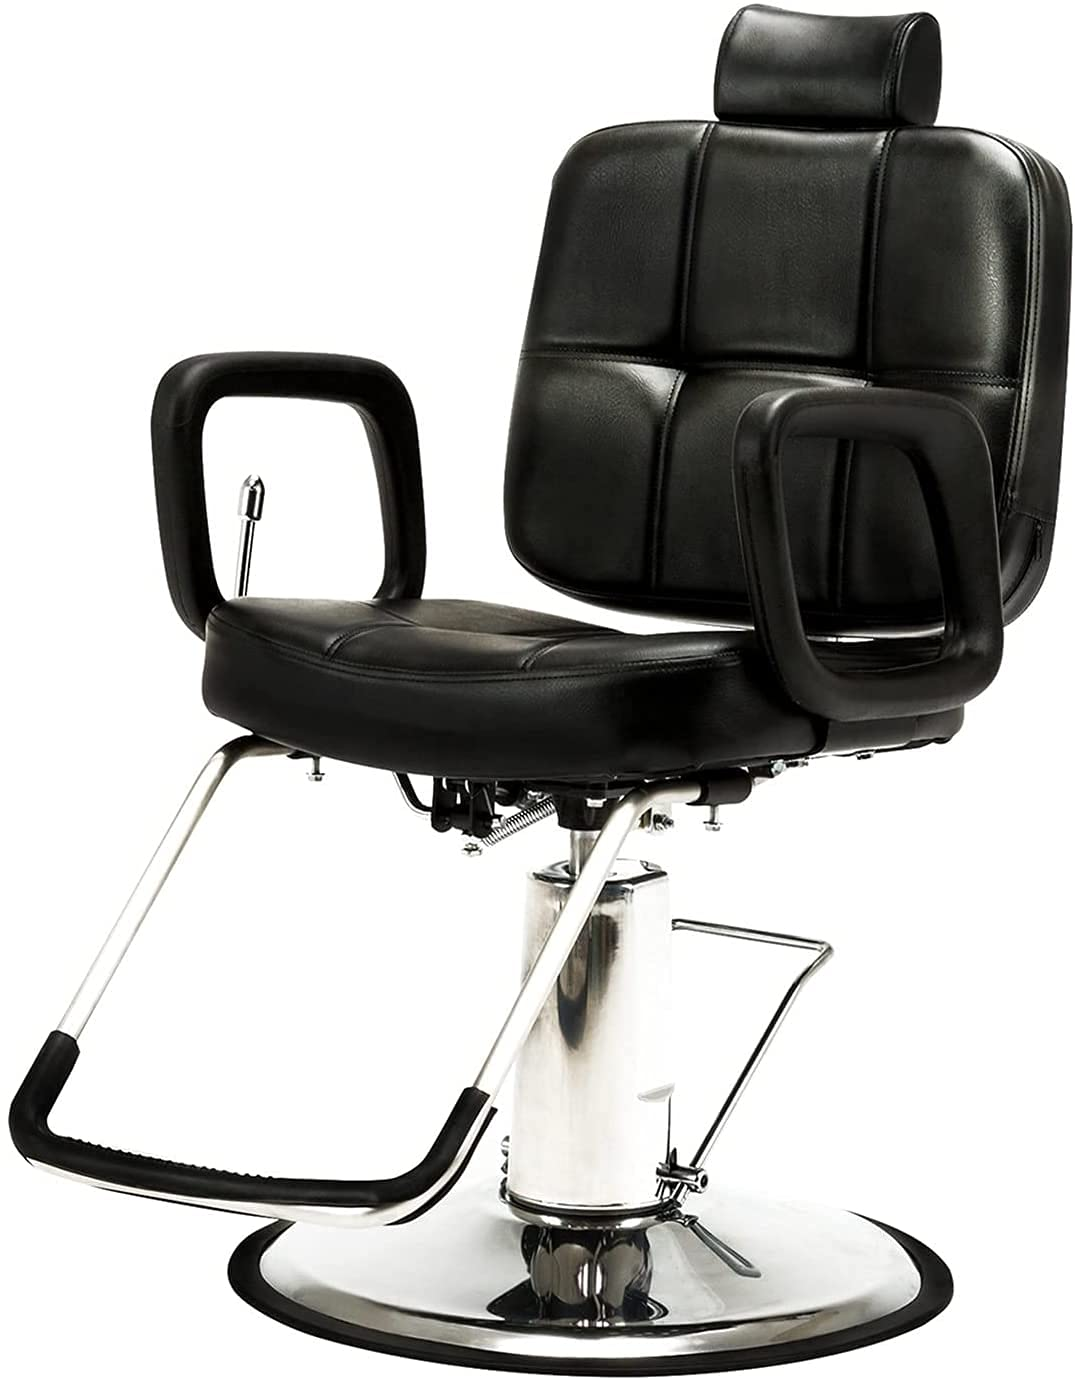 Barber Chairs Inexpensive Hydraulic Limited price sale Hair Beauty Equipment Chair Styling